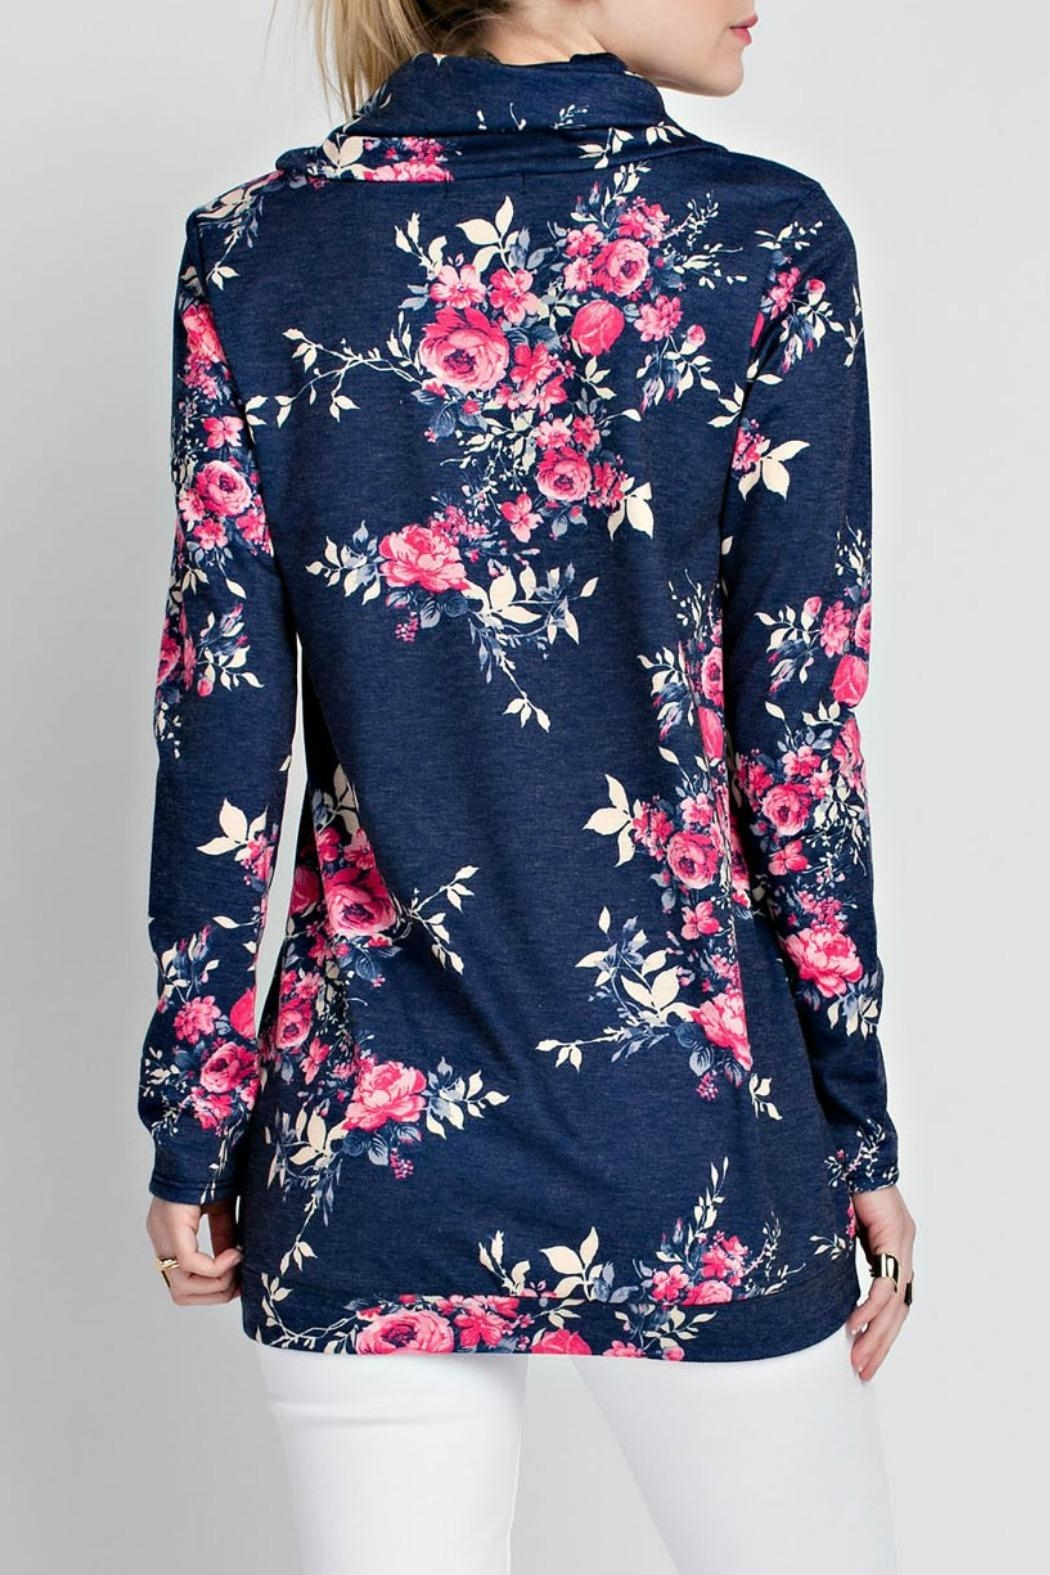 12pm by Mon Ami Jenny Floral Sweatshirt - Front Full Image